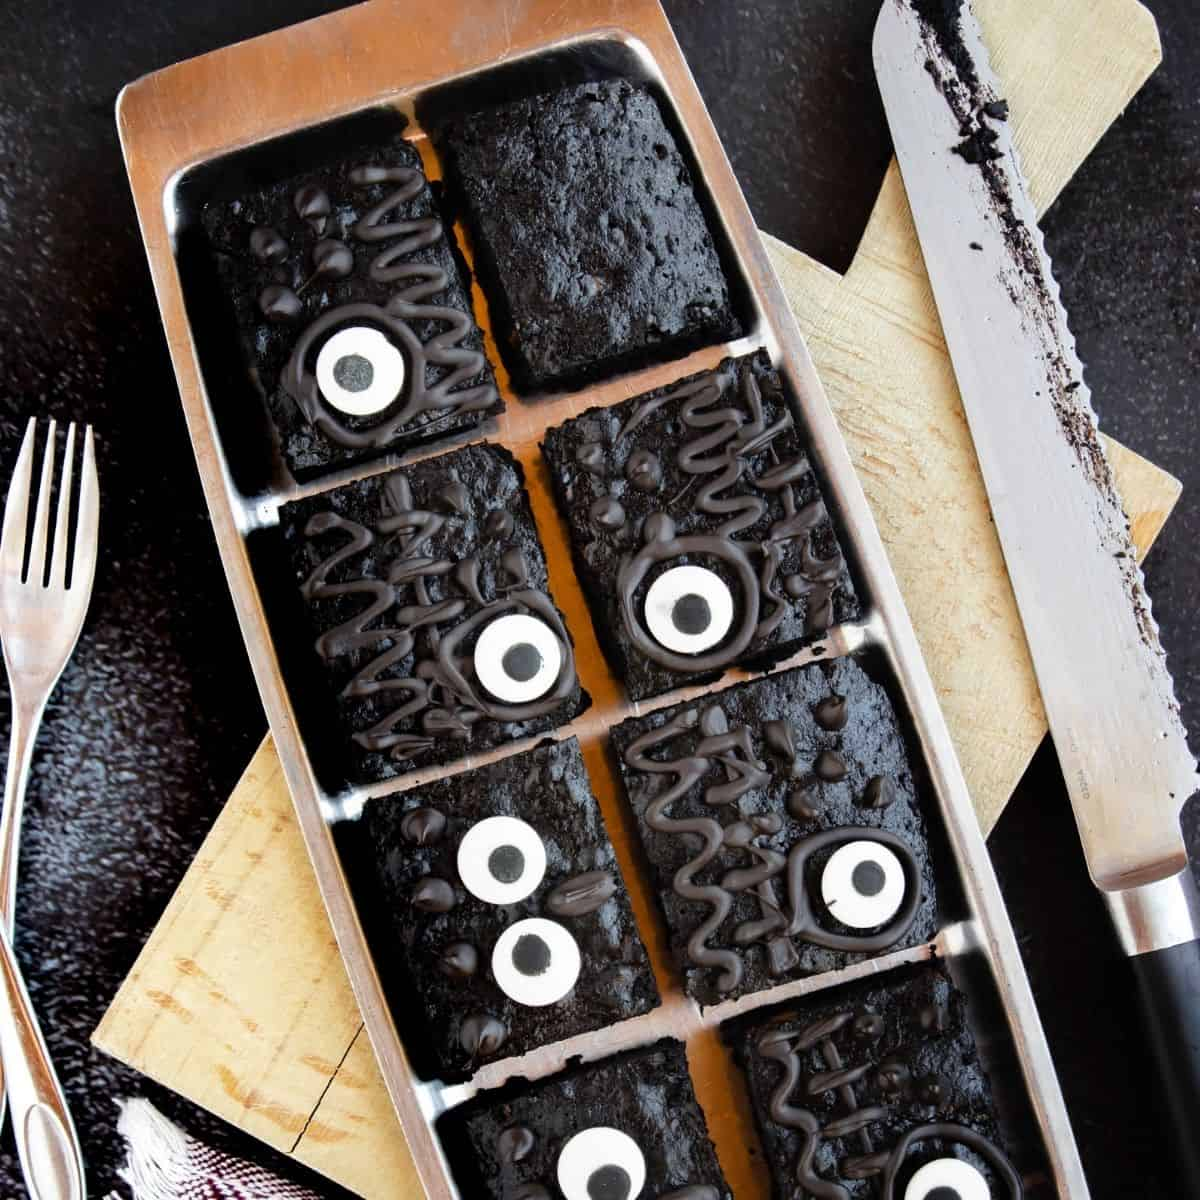 Hocus Pocus brownies cut into squares and being decorated with candy eyes and chocolate decorations.